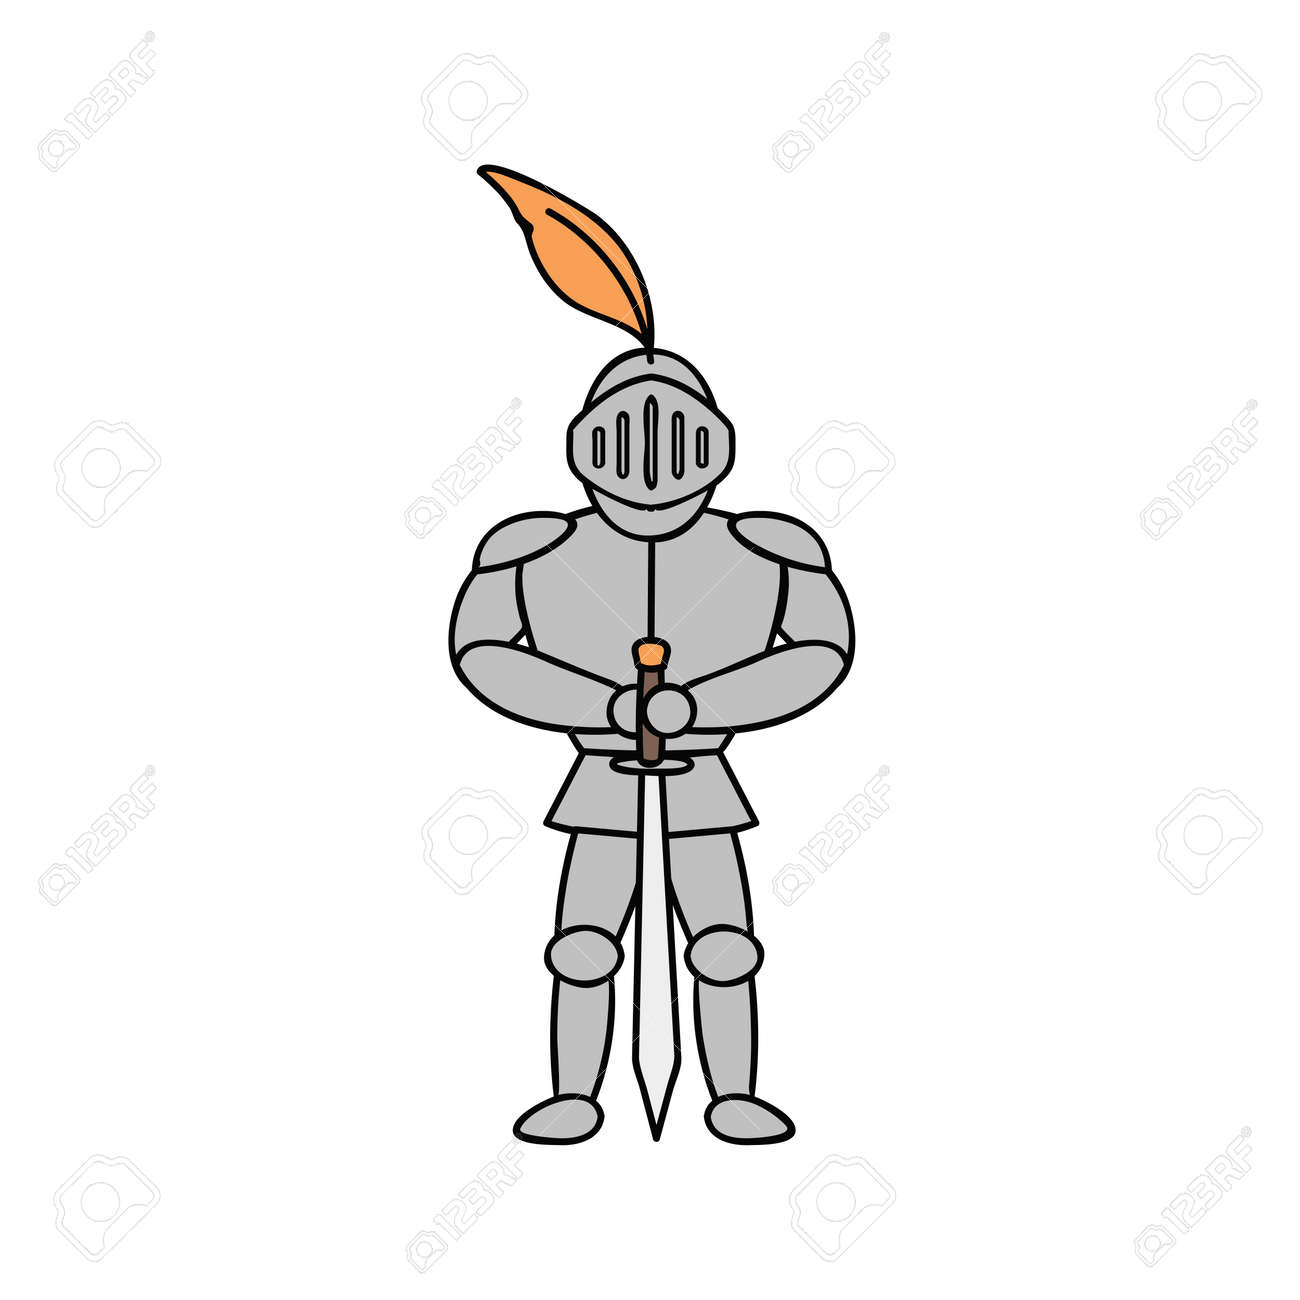 knight in armor illustration on white background - 172106827